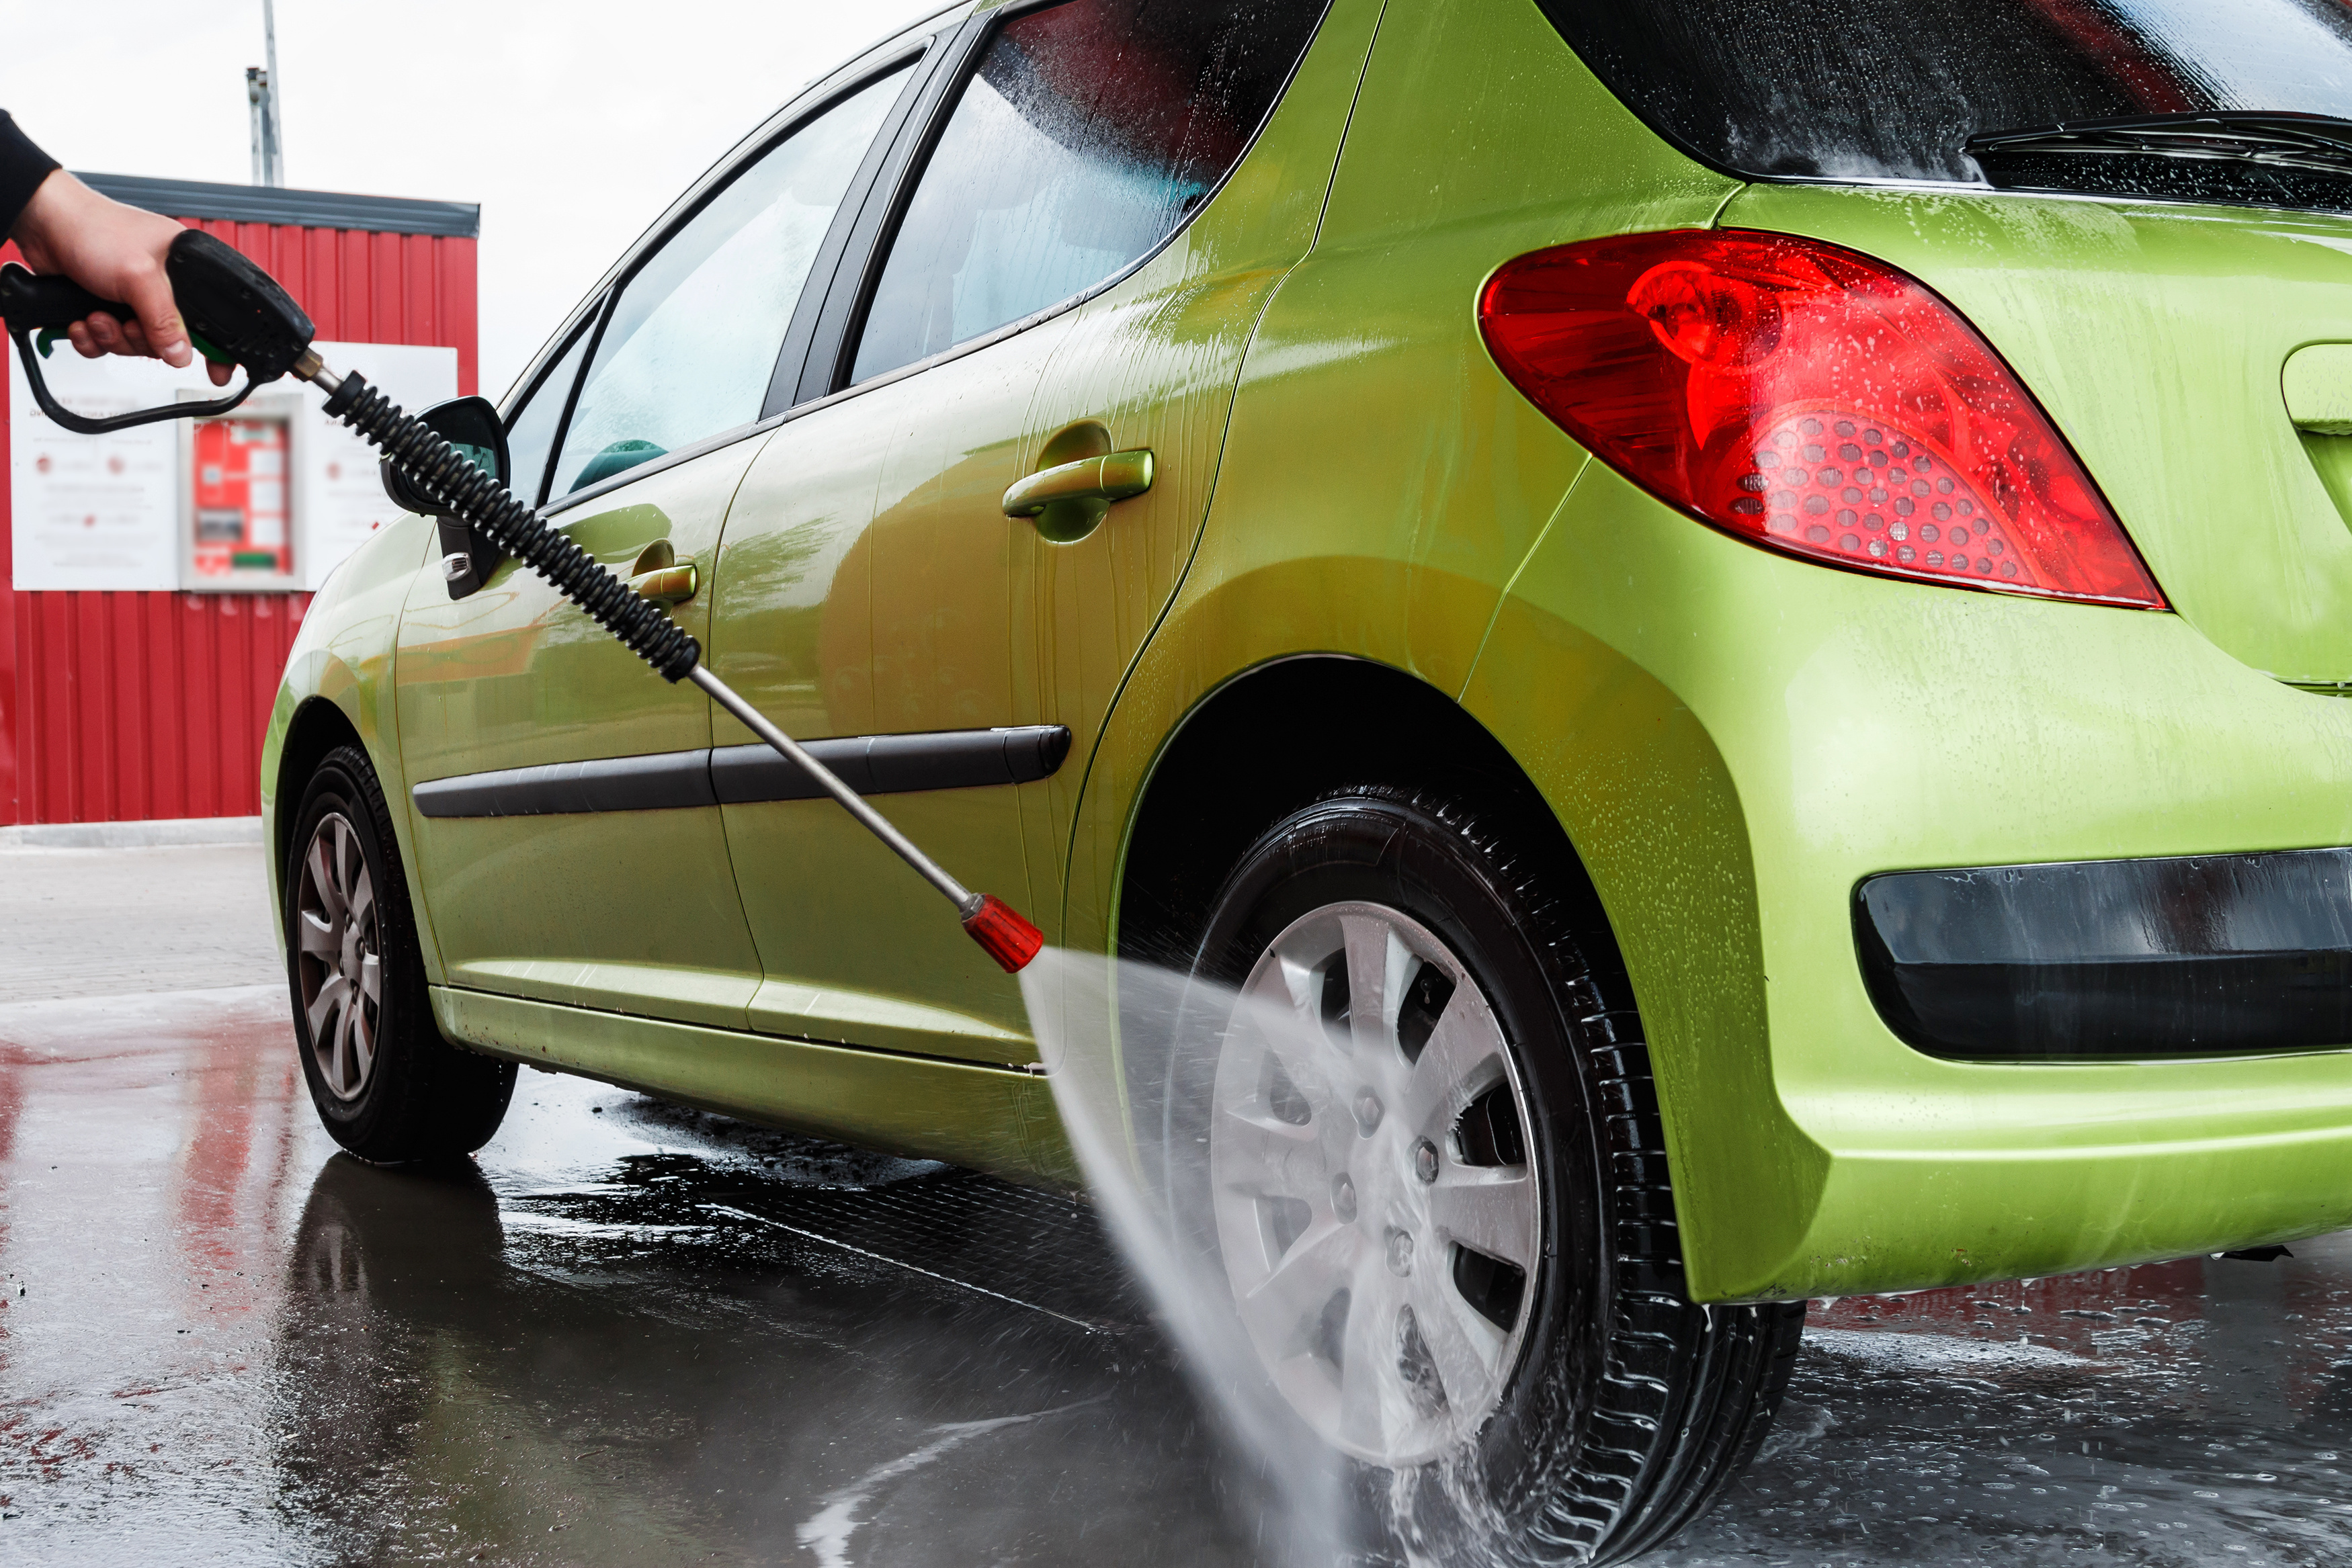 Washing Your Car At Home Tips Auto Detail Guide